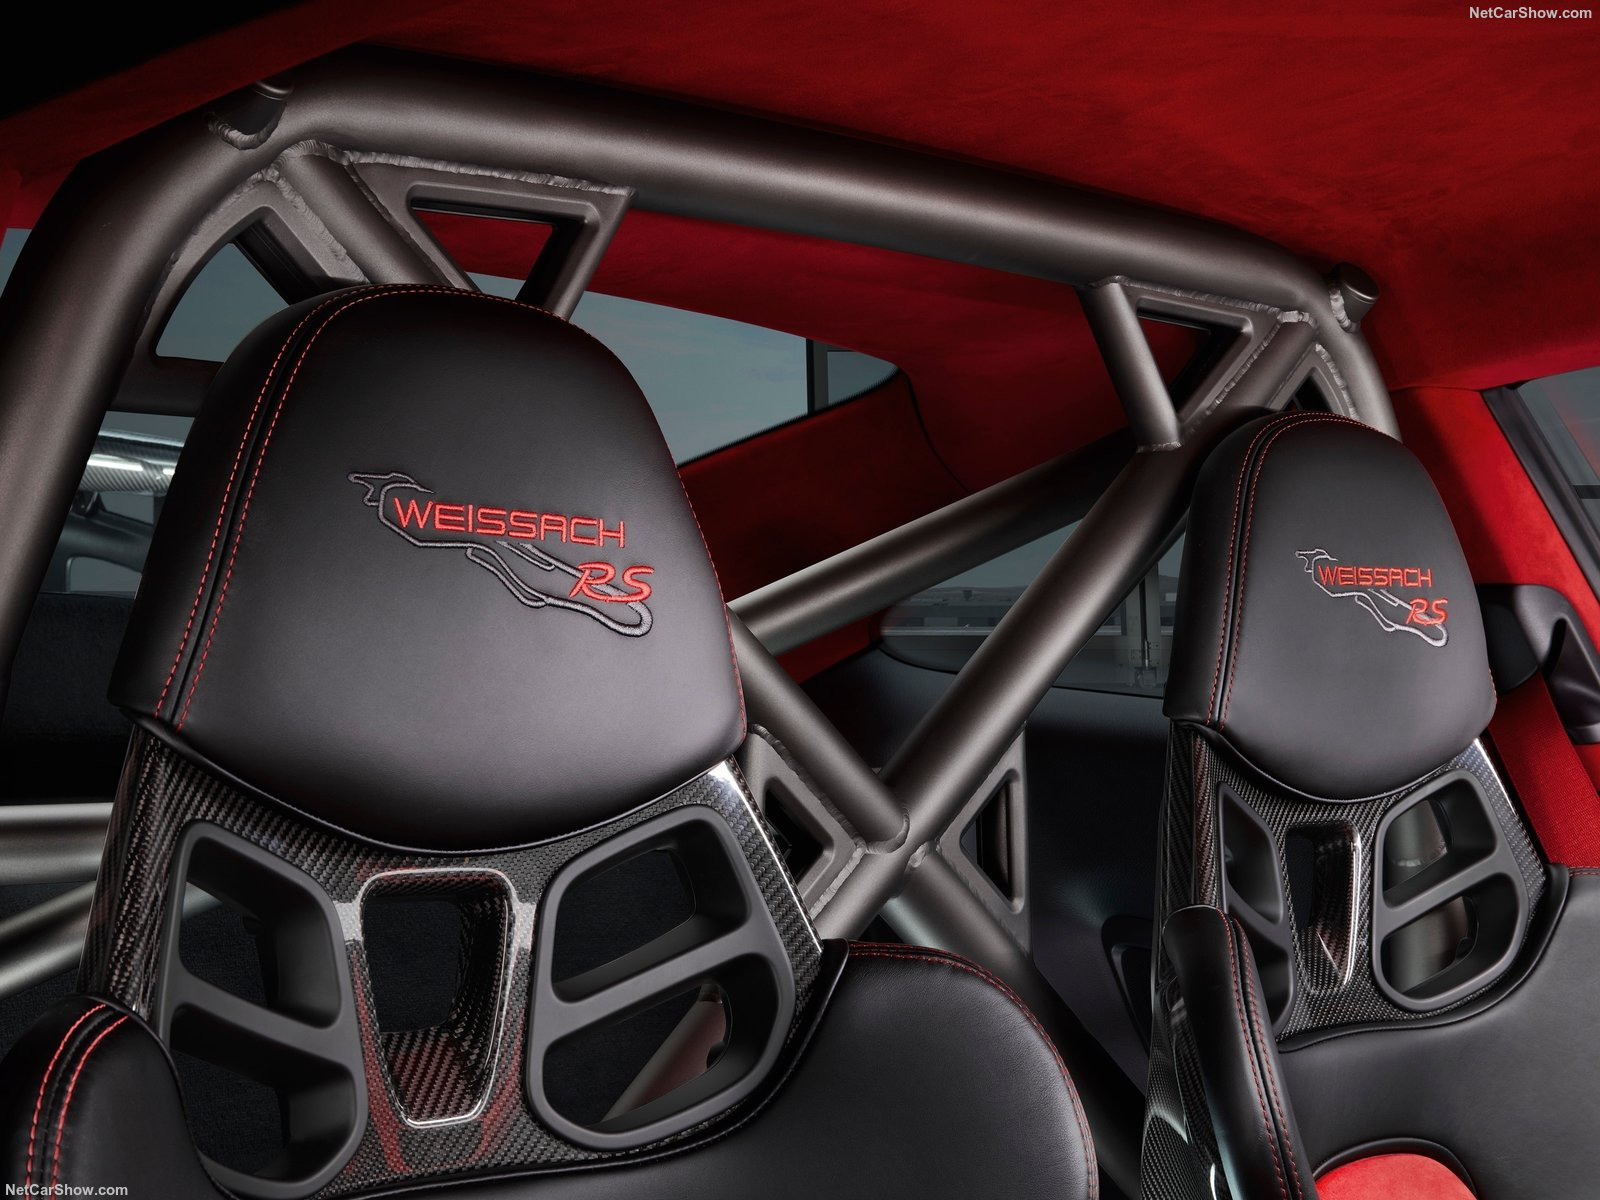 911 GT2 RS seats